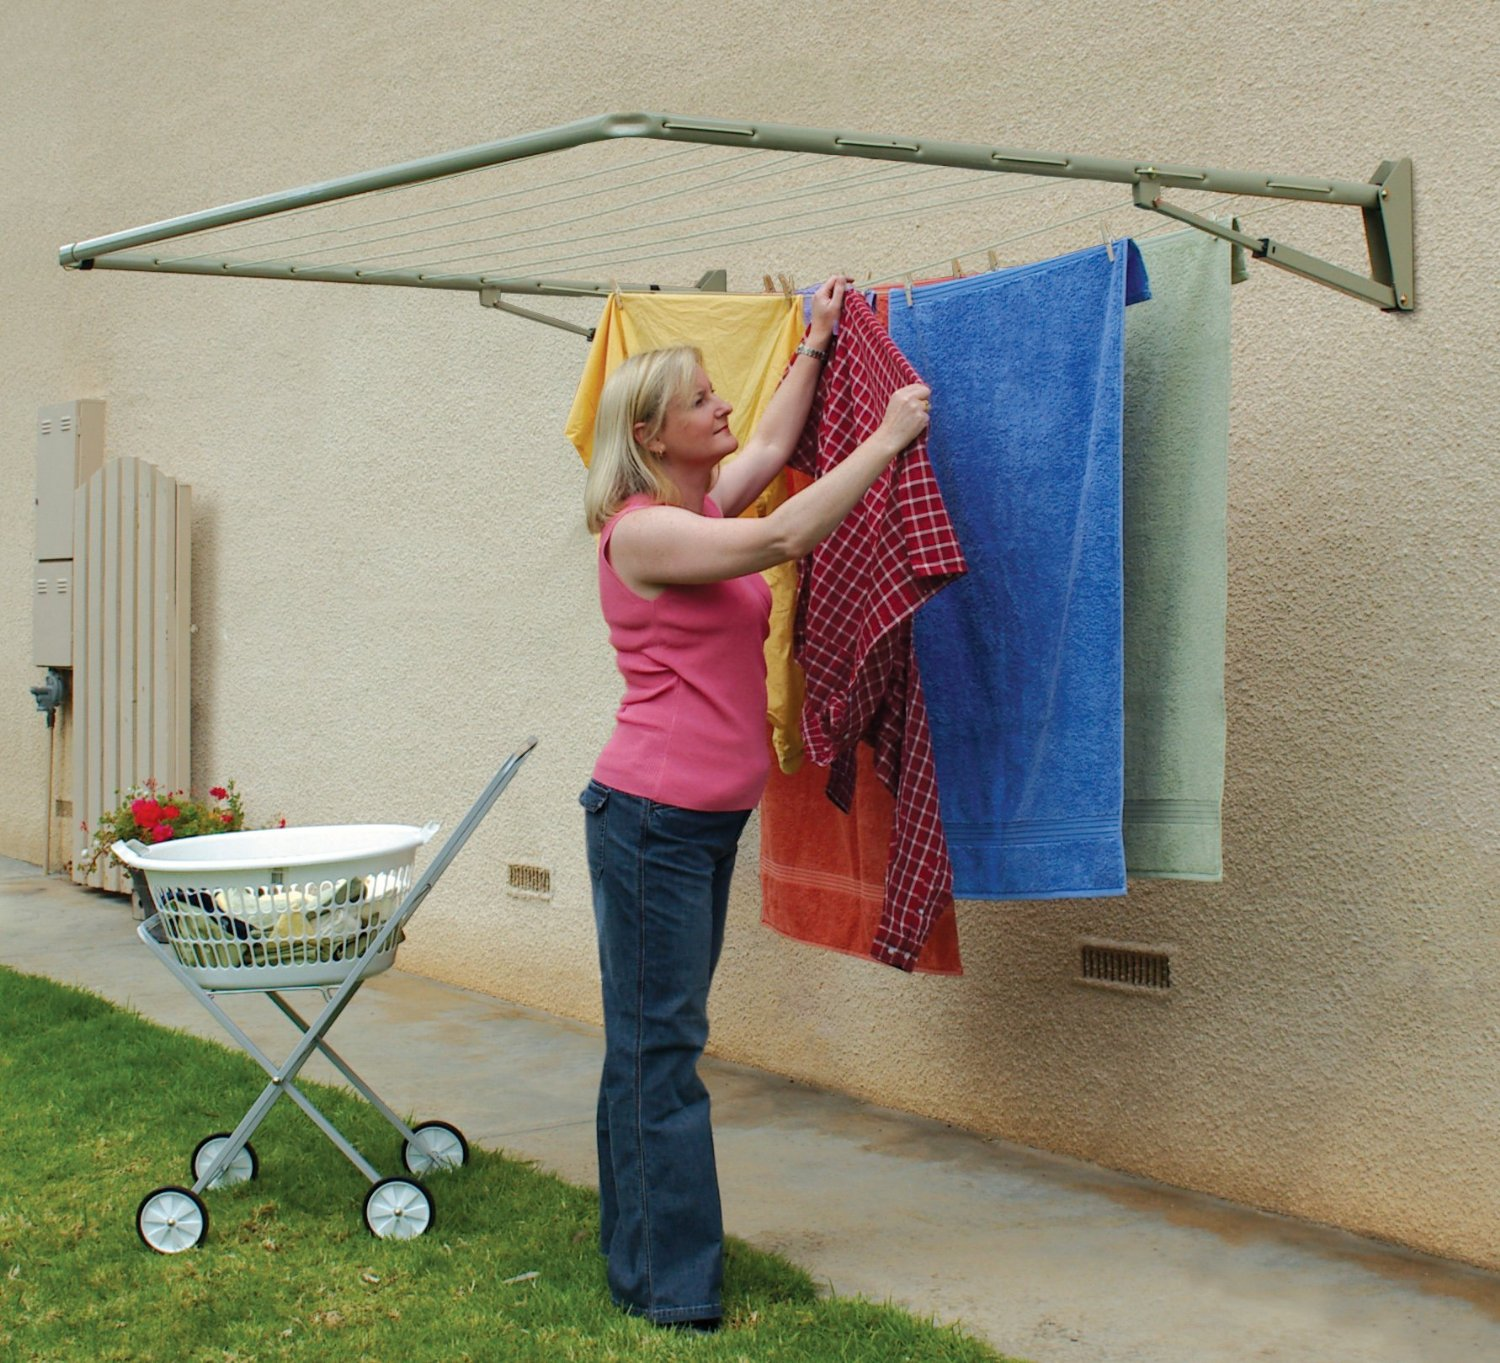 Clothes Drying On A Clothesline ~ Better energy saving ways to dry laundry